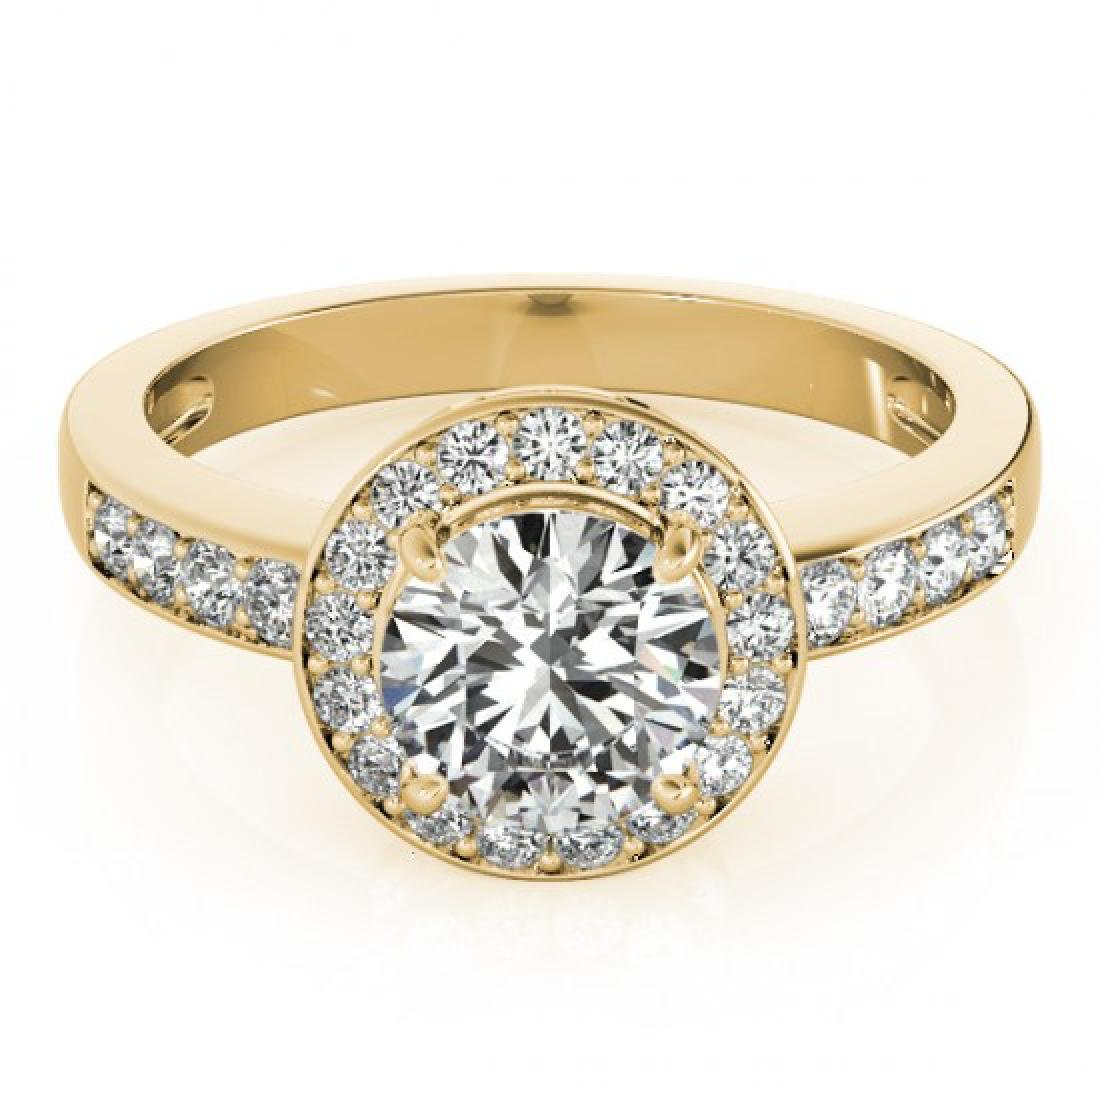 1.2 CTW Certified VS/SI Diamond Solitaire Halo Ring 18K